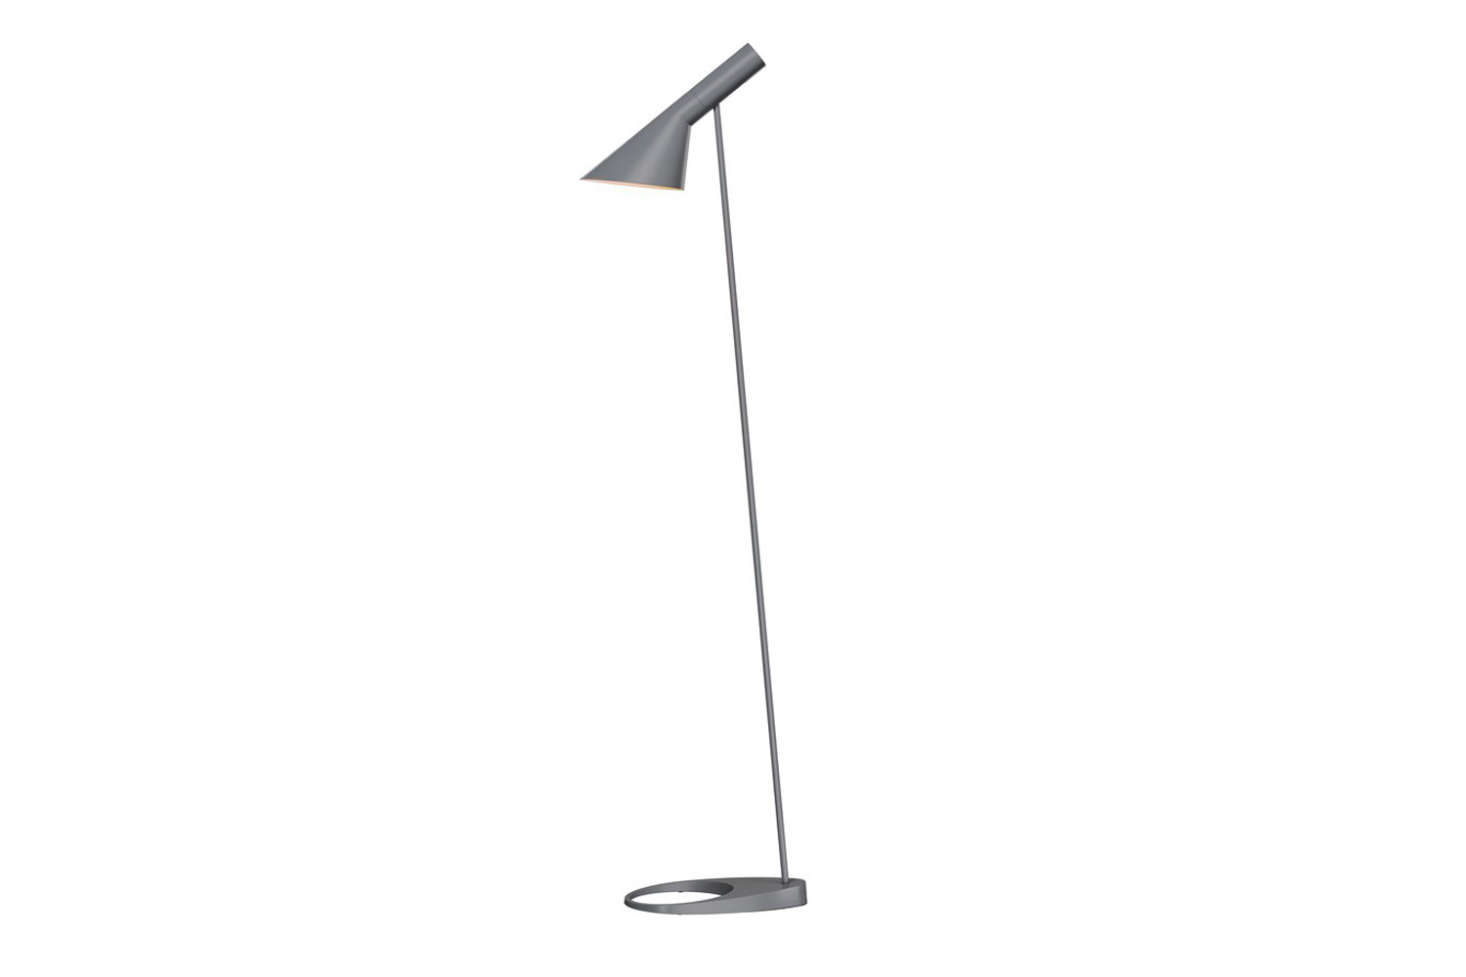 Arne Jacobsen designed the AJ Floor Lamp as part of his 1960 collection for Louis Poulsen. It delivers glare-free, directed light and has become an icon since its first release. Made with a steel shade and zinc base, the lamp comes in 10 colors; $1,122 at Horne.